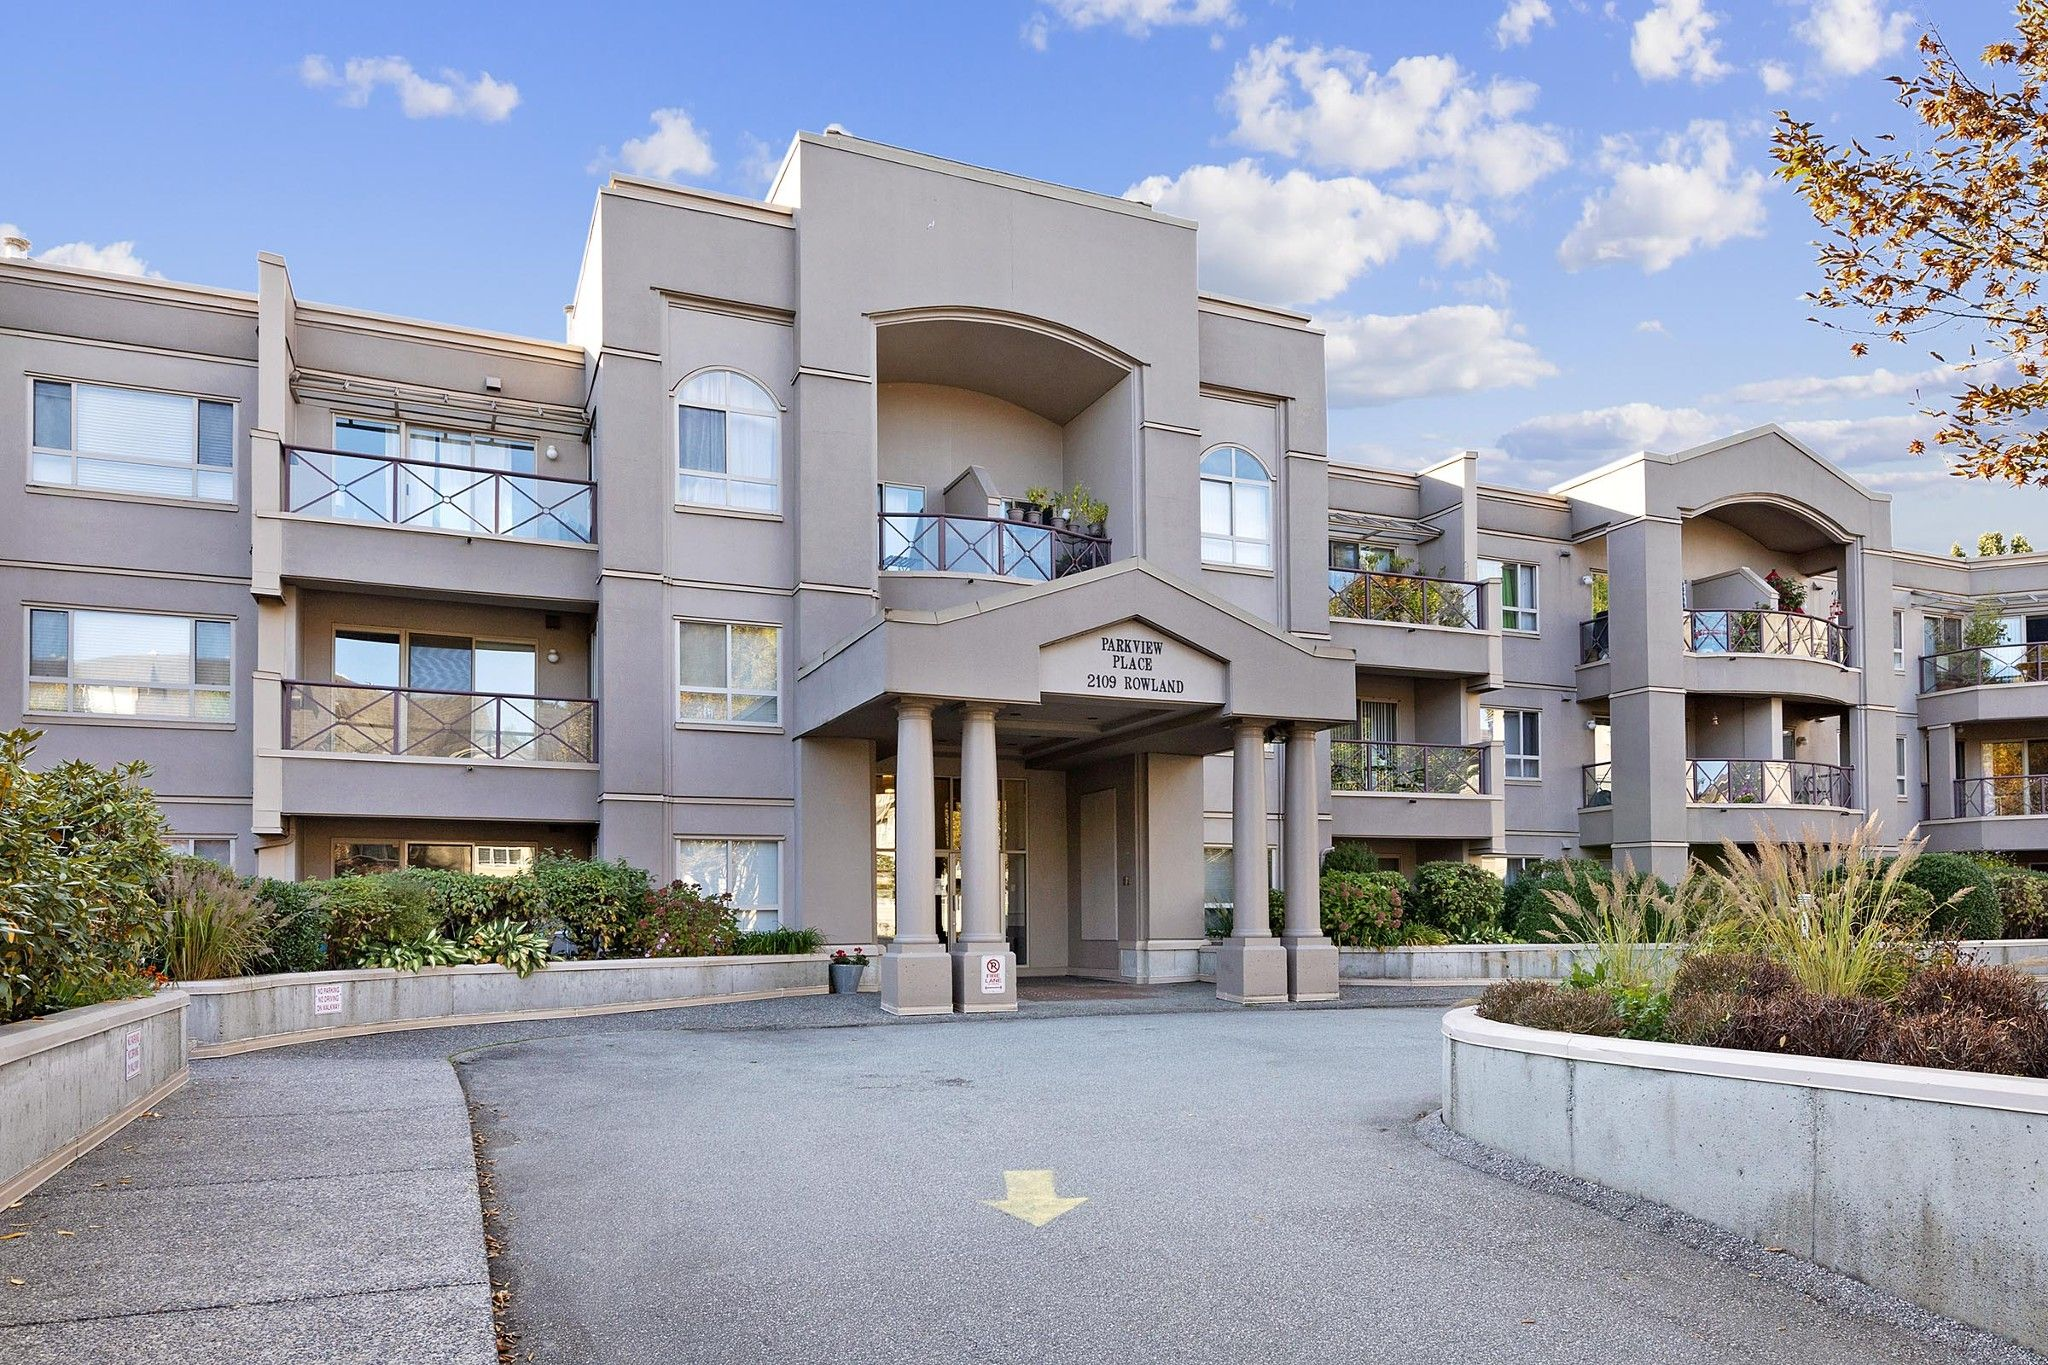 """Main Photo: 308 2109 ROWLAND Street in Port Coquitlam: Central Pt Coquitlam Condo for sale in """"PARKVIEW PLACE"""" : MLS®# R2621710"""